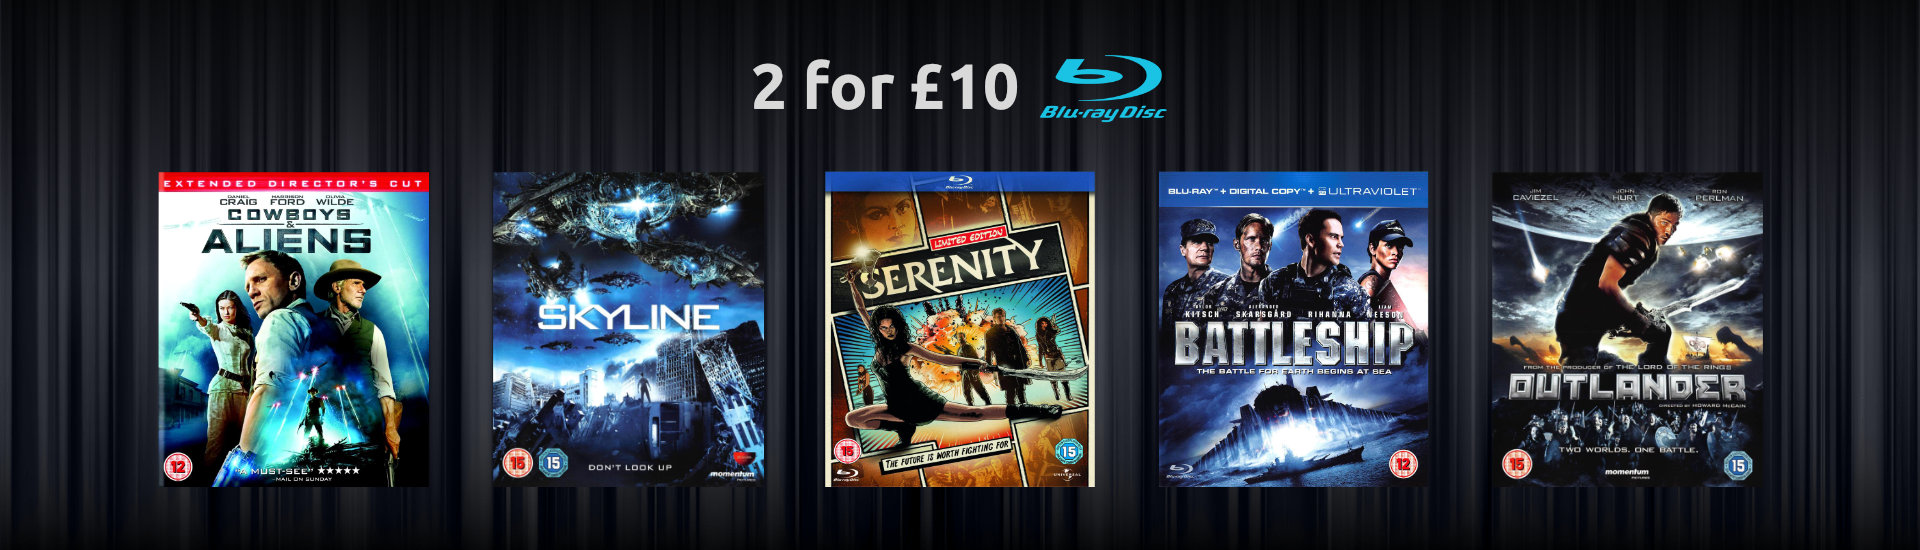 2 for £10 Sci-Fi